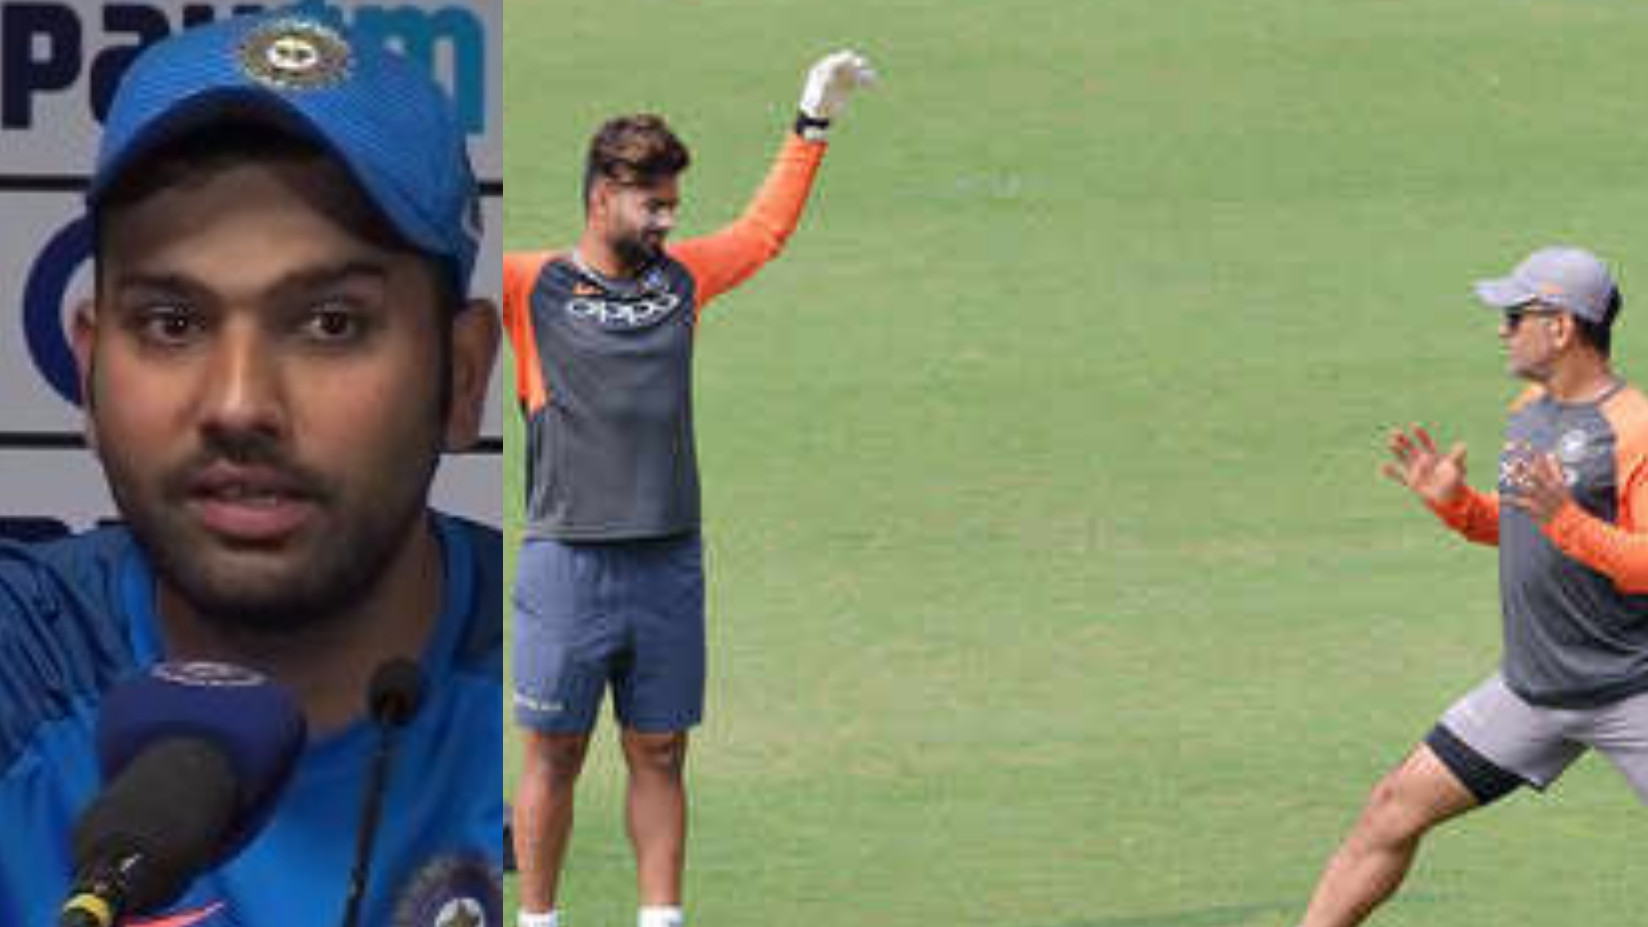 IND v WI 2018: Rohit Sharma calls absence of MS Dhoni a big opportunity for Rishabh Pant to impress